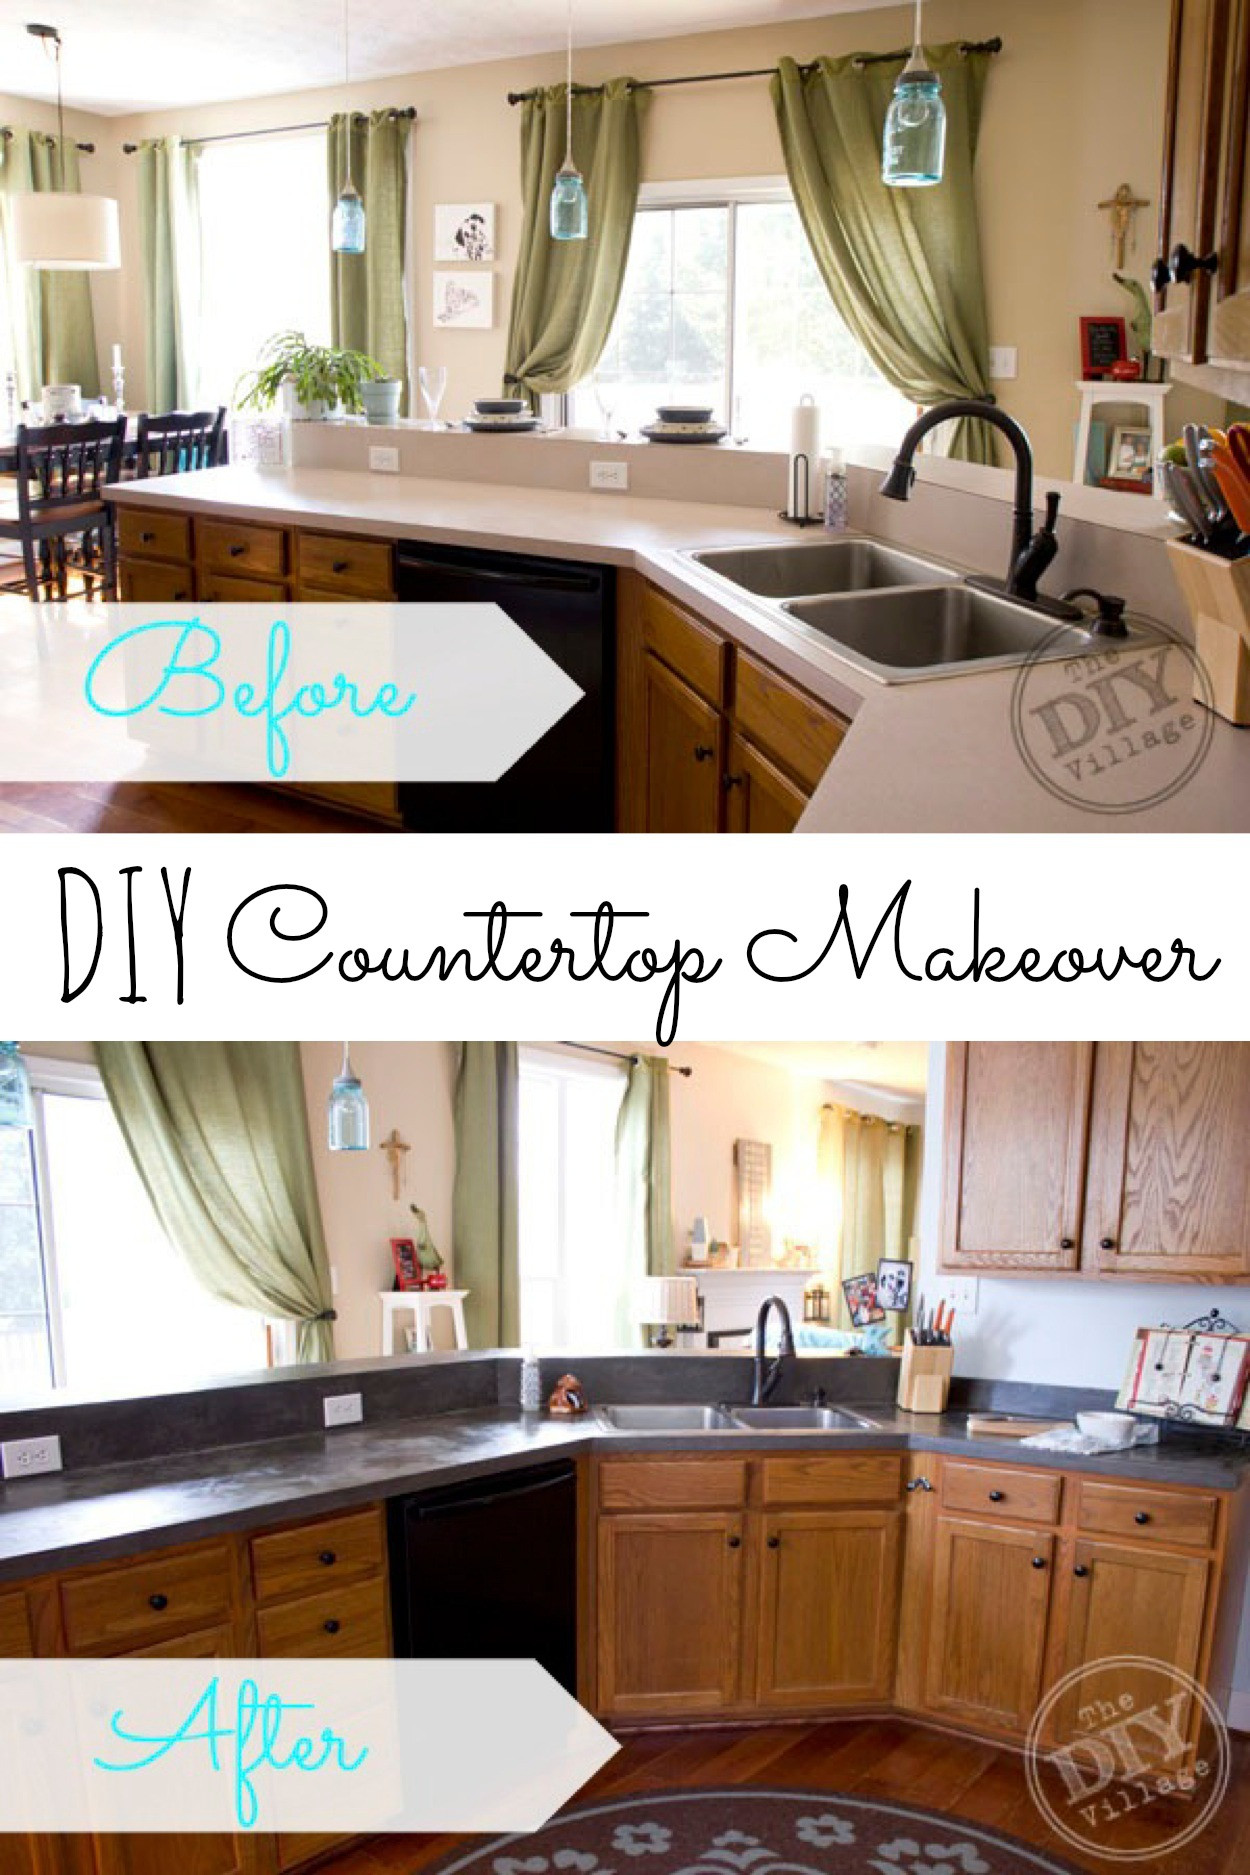 Best ideas about DIY Kitchen Counters . Save or Pin 9 DIY Countertop Makeovers Now.